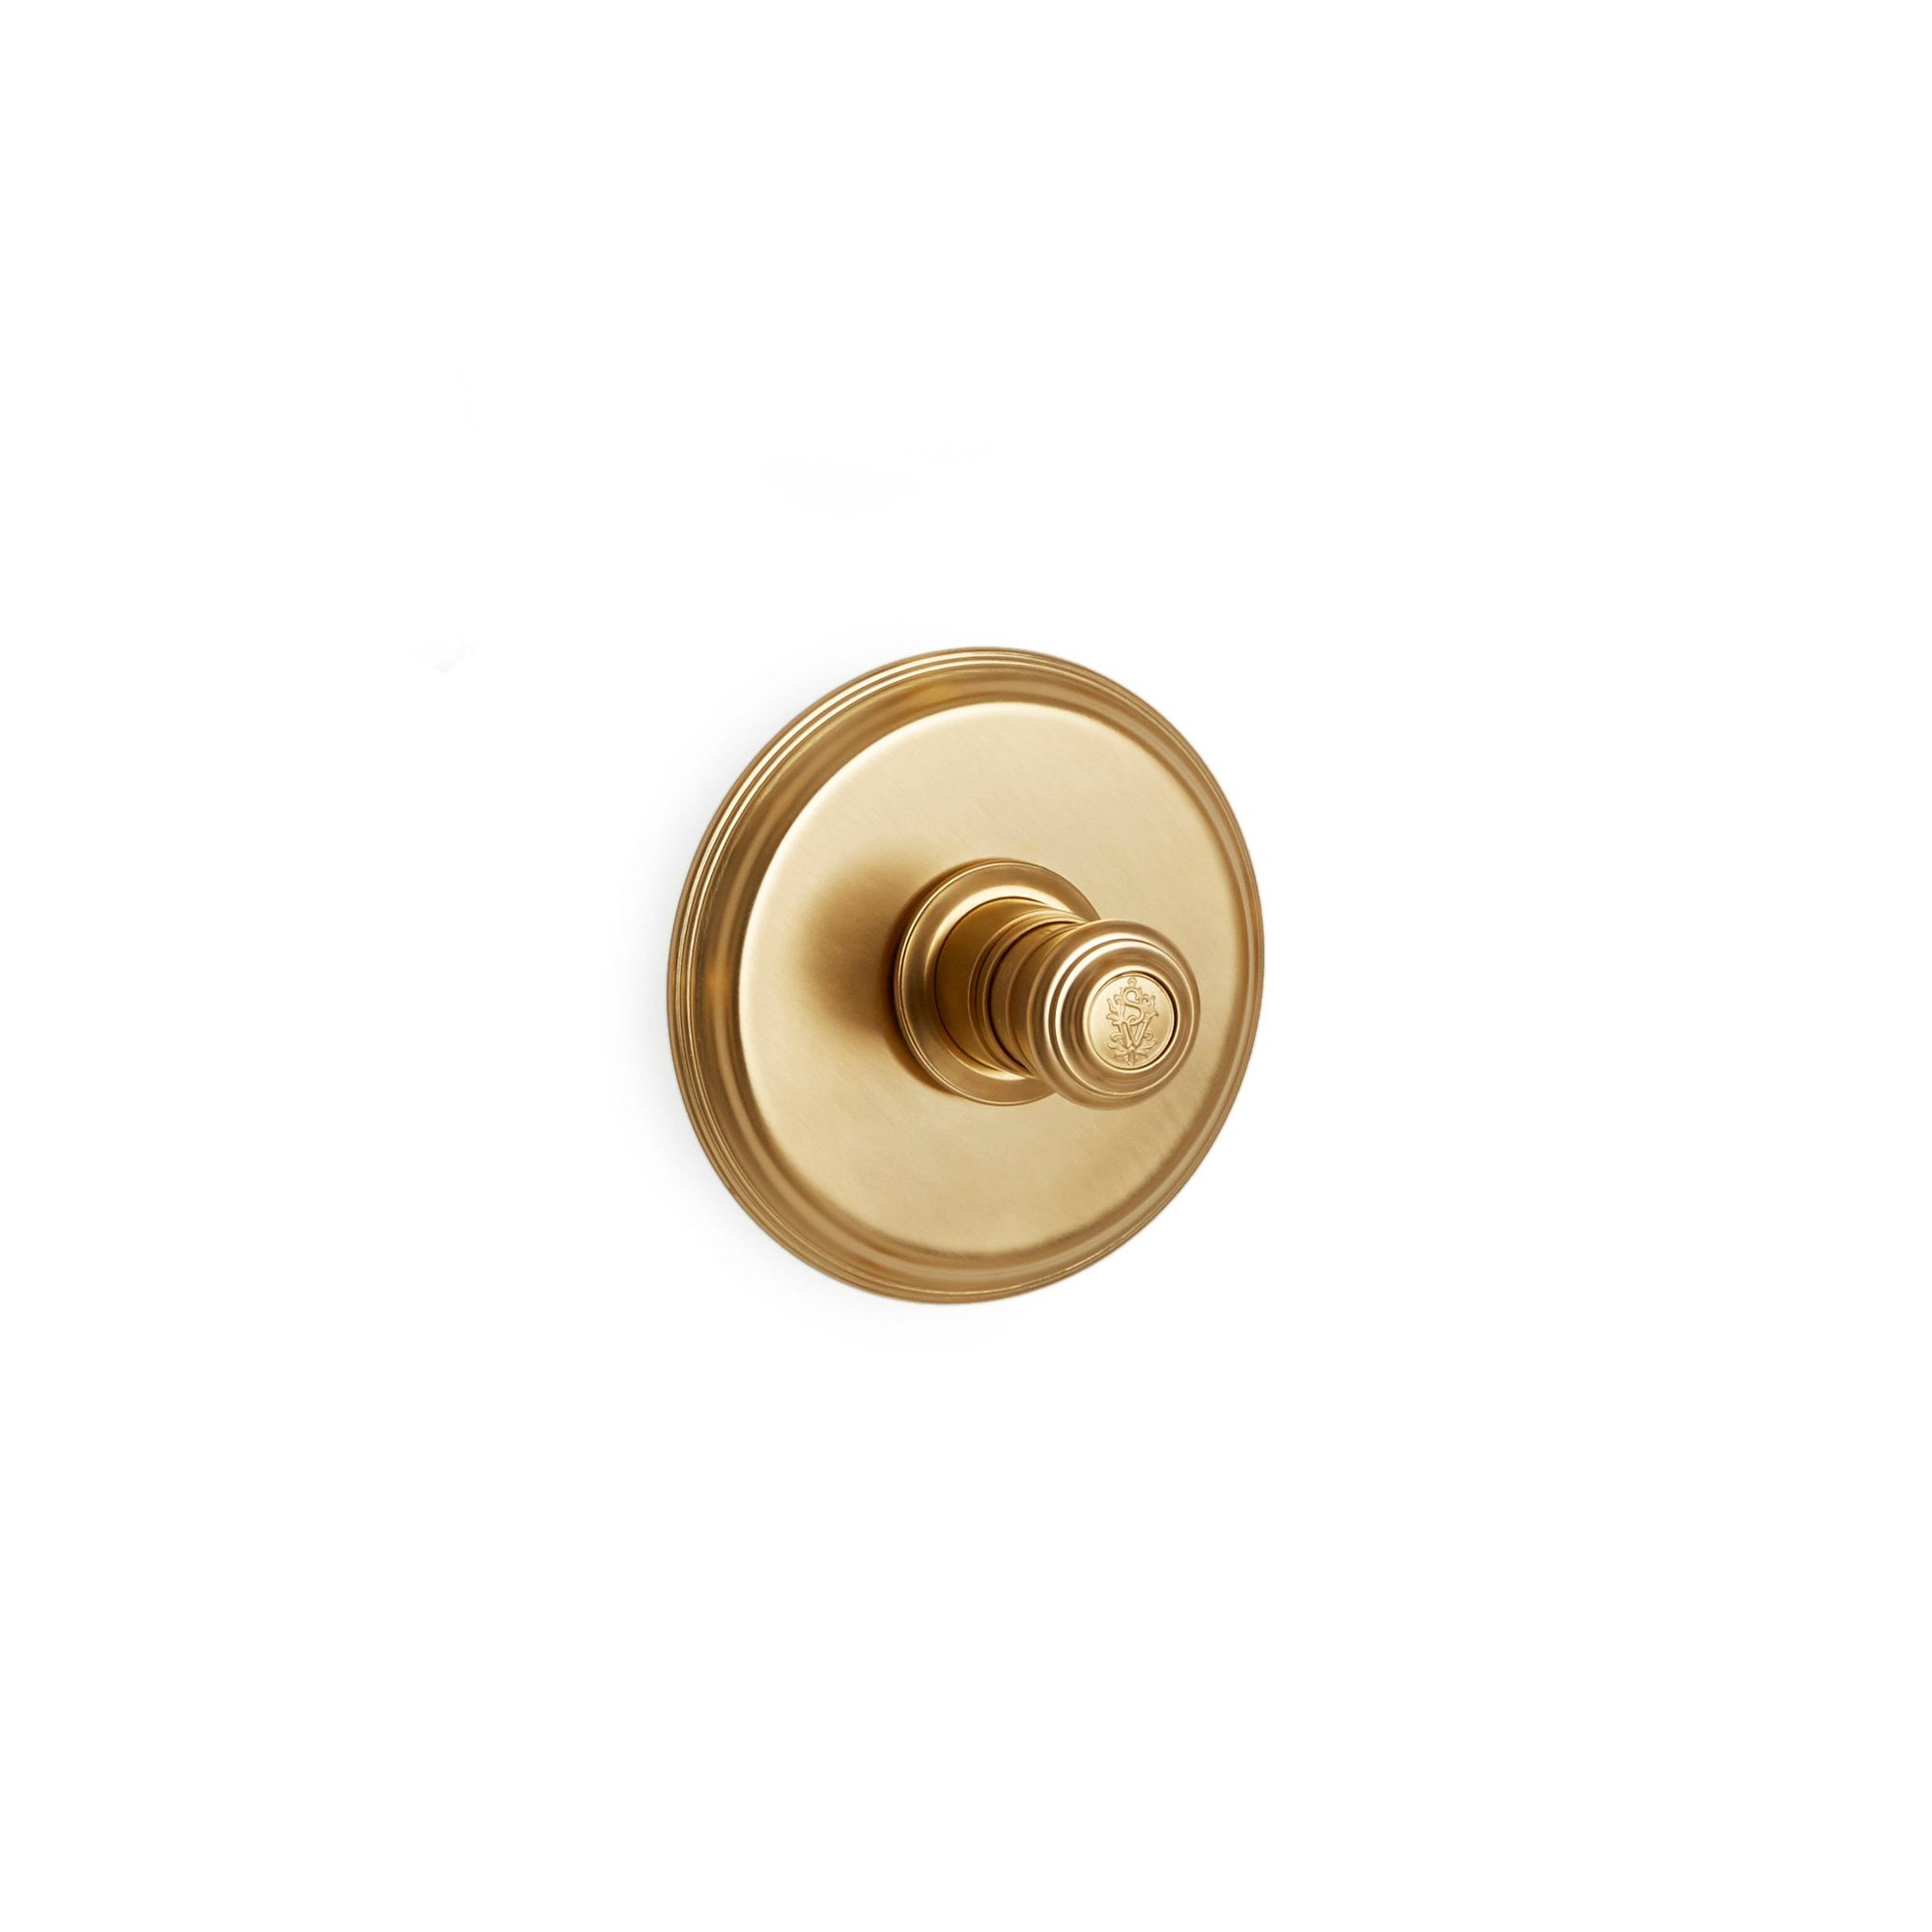 TMO07PL-LOGO-GP Sherle Wagner International Grey High Flow Thermostatic Trim in Gold Plate metal finish